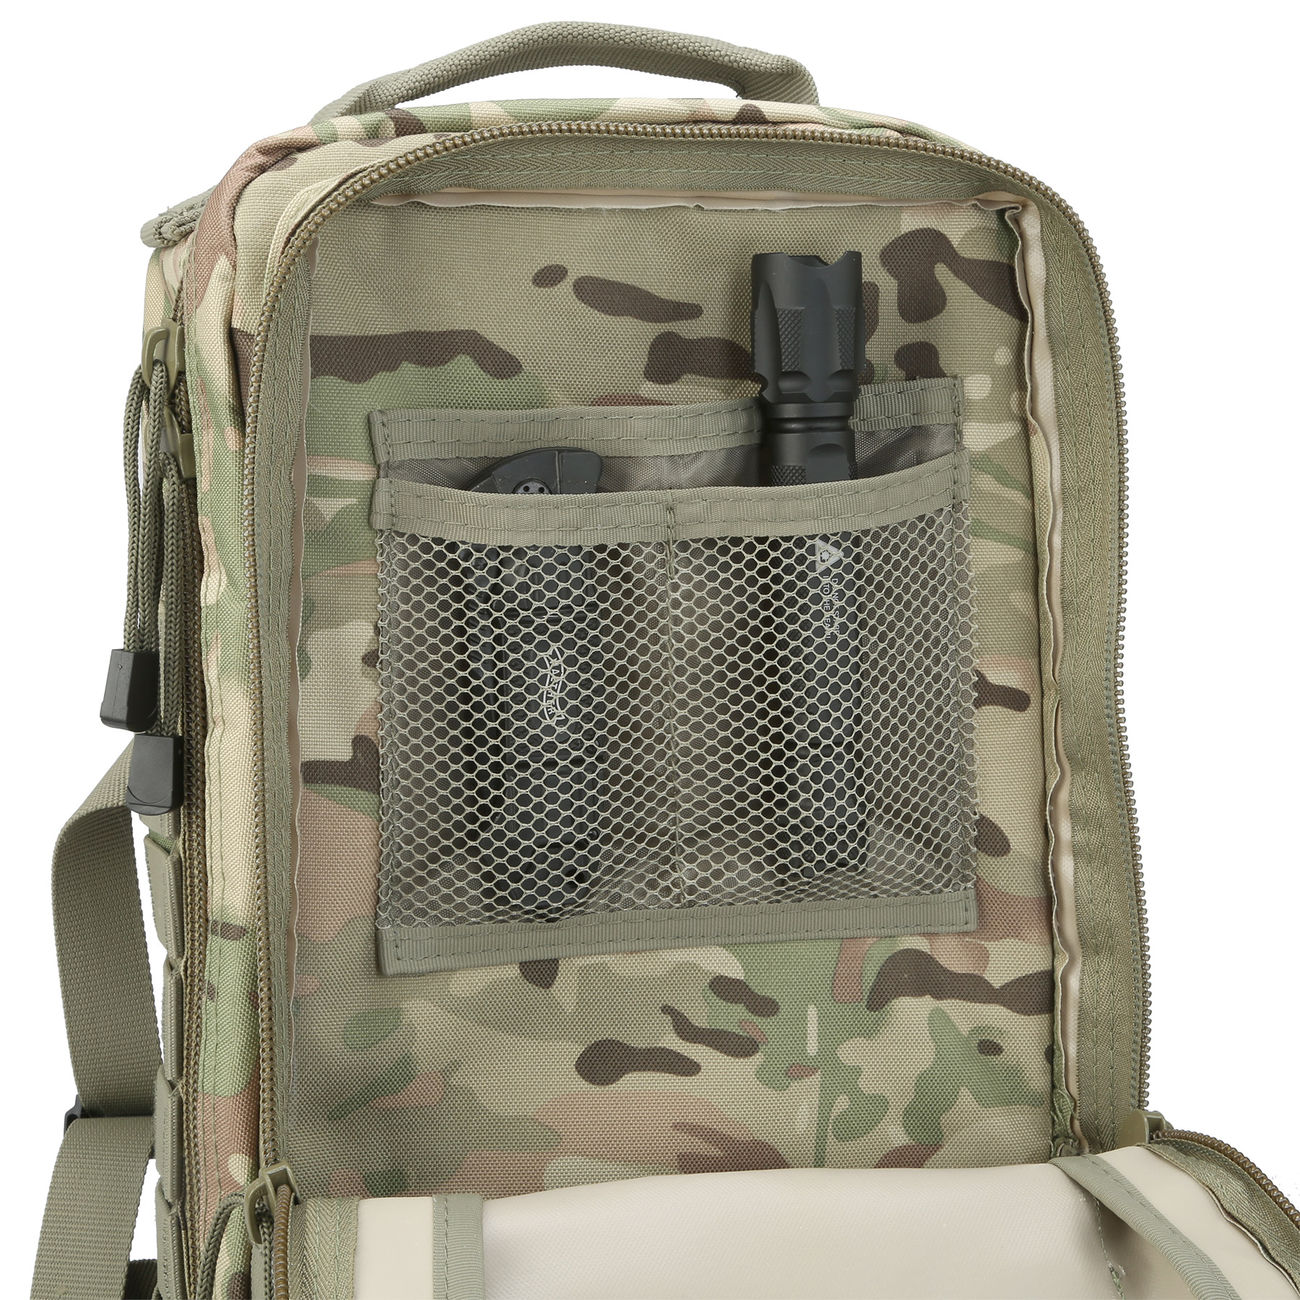 MFH Rucksack Assault I operation camo 8